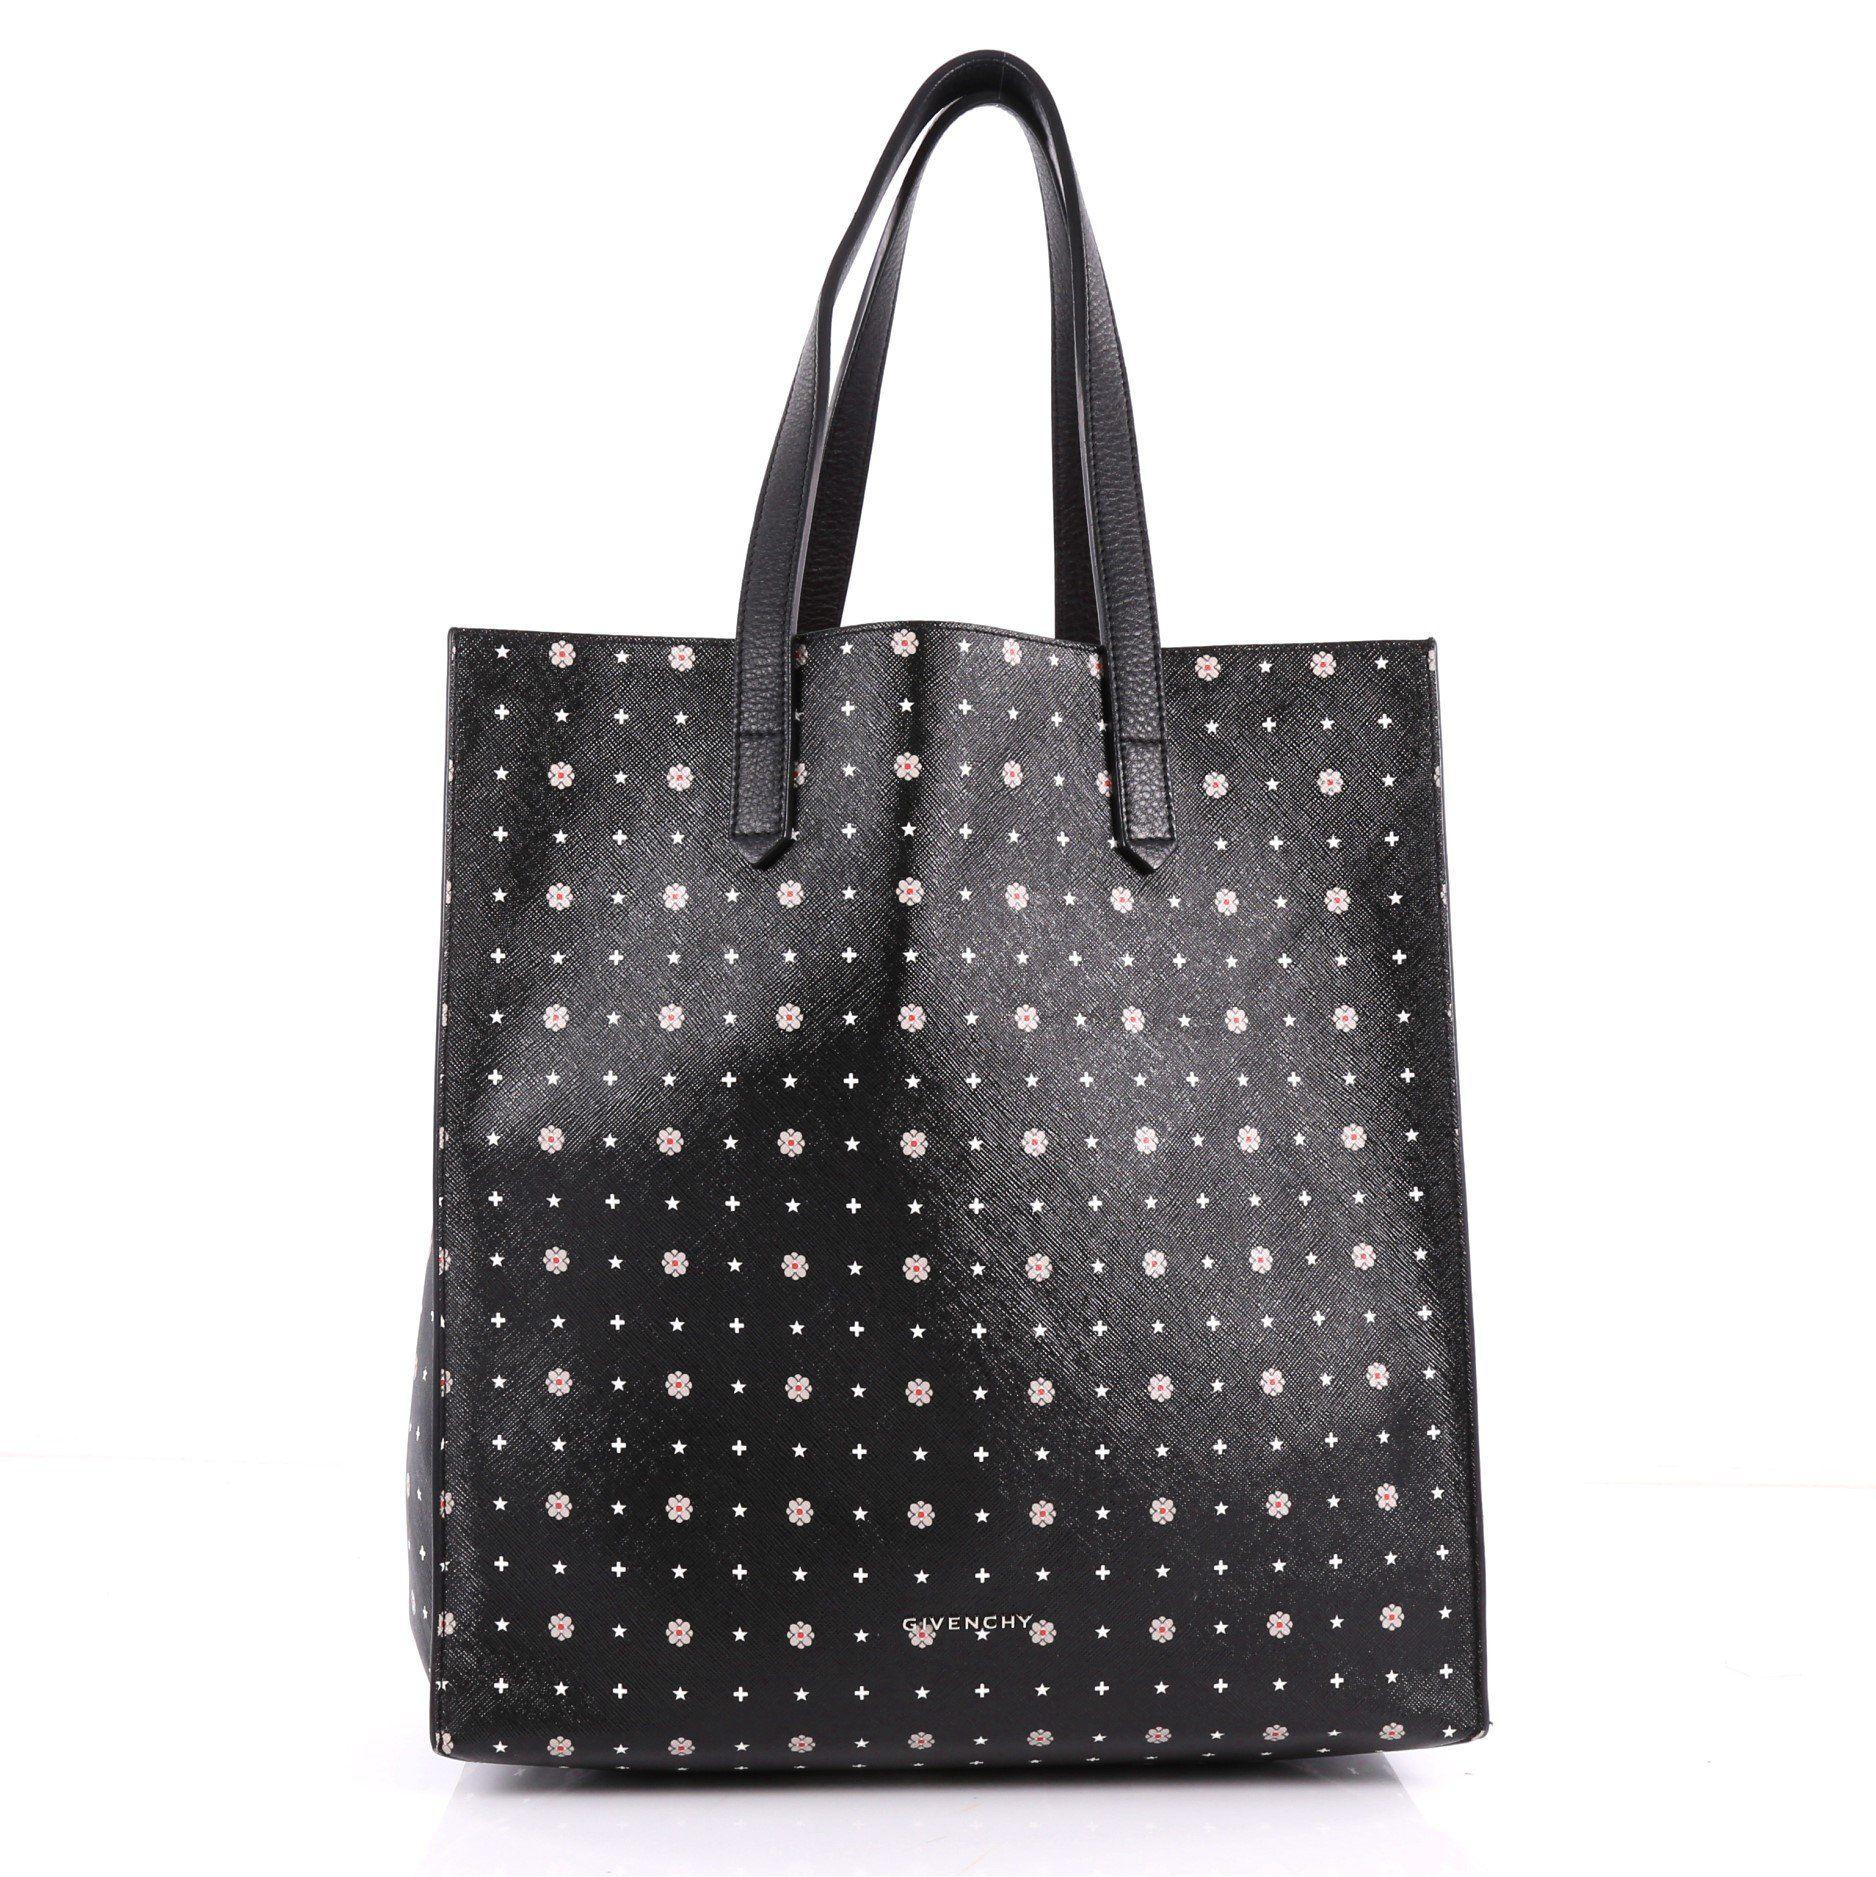 492f96d82630 Givenchy - Black Pre Owned Stargate Shopper Tote Printed Coated Canvas  Large - Lyst. View fullscreen